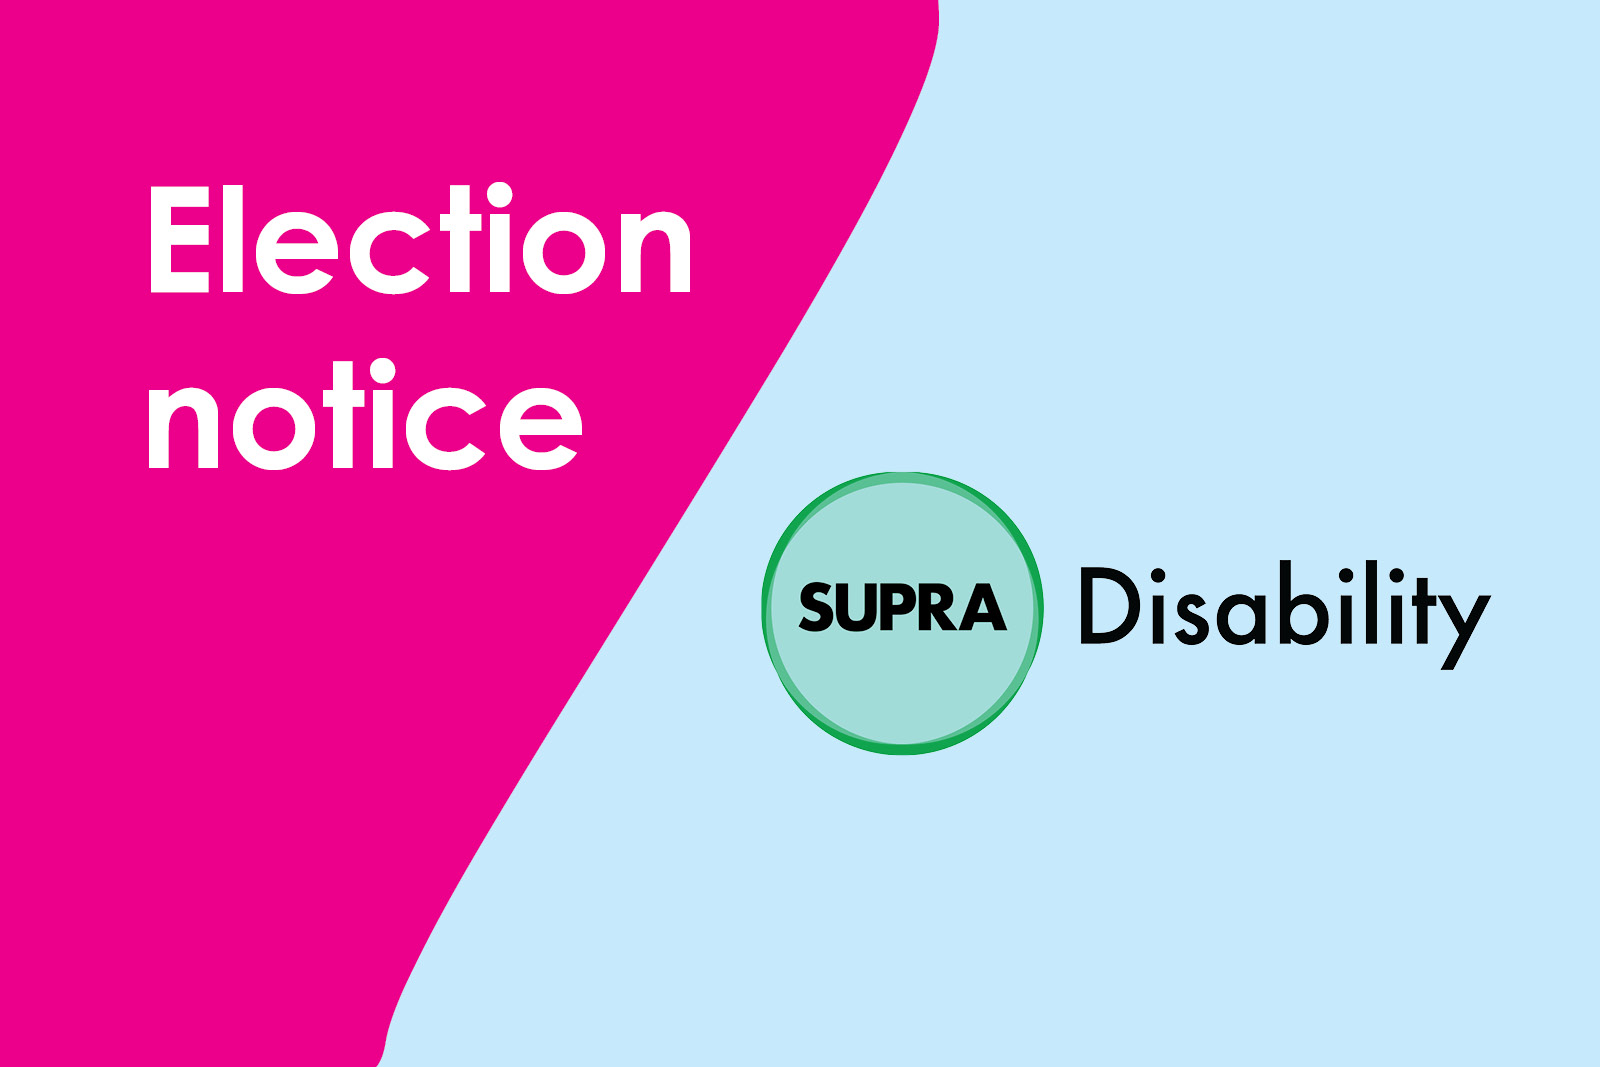 Election notice, logo for SUPRA Disabilities Equity group